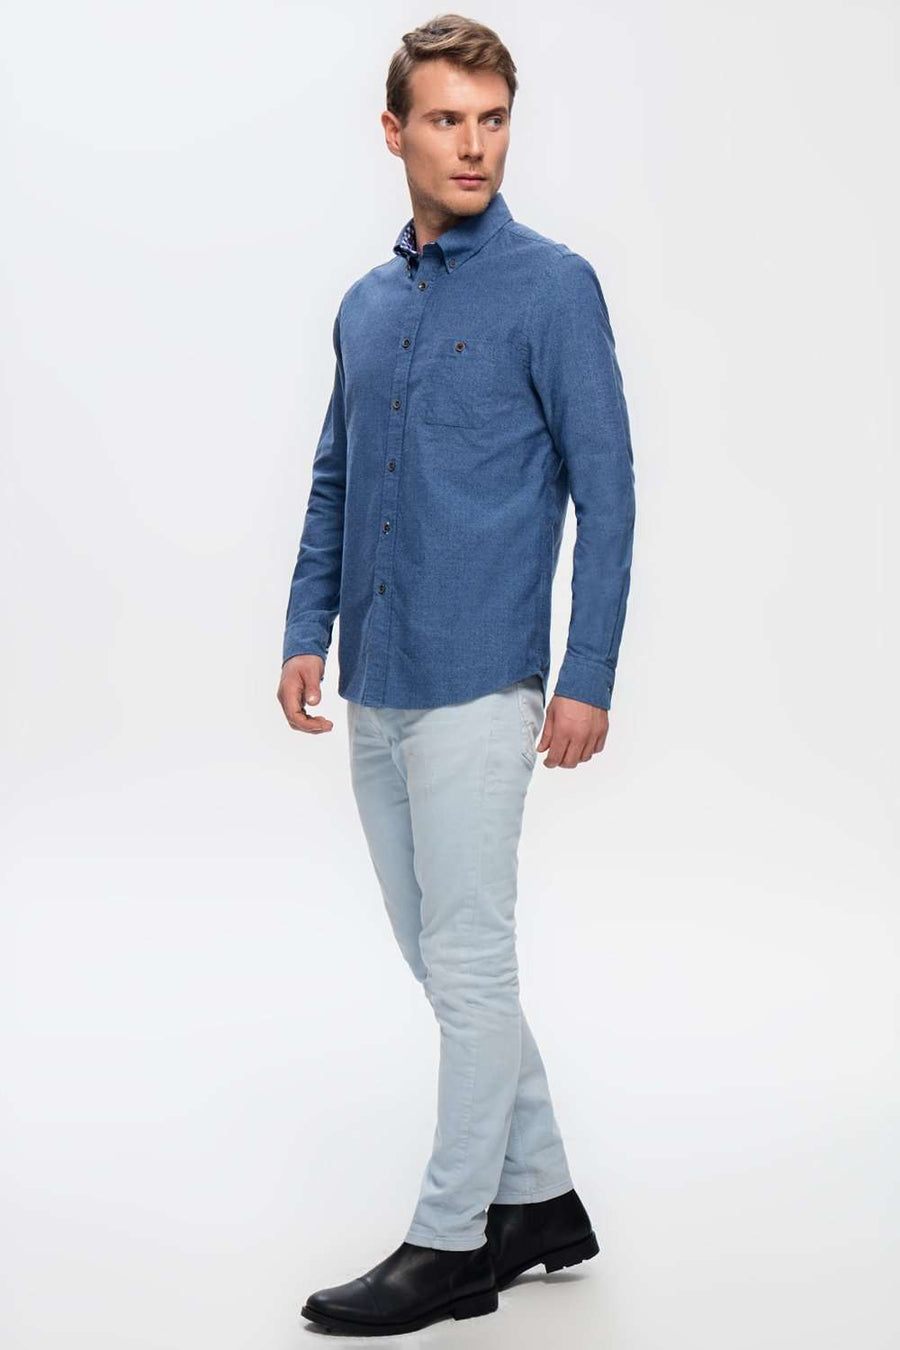 WROCLAW DARK BLUE SHIRTe],Duacosta